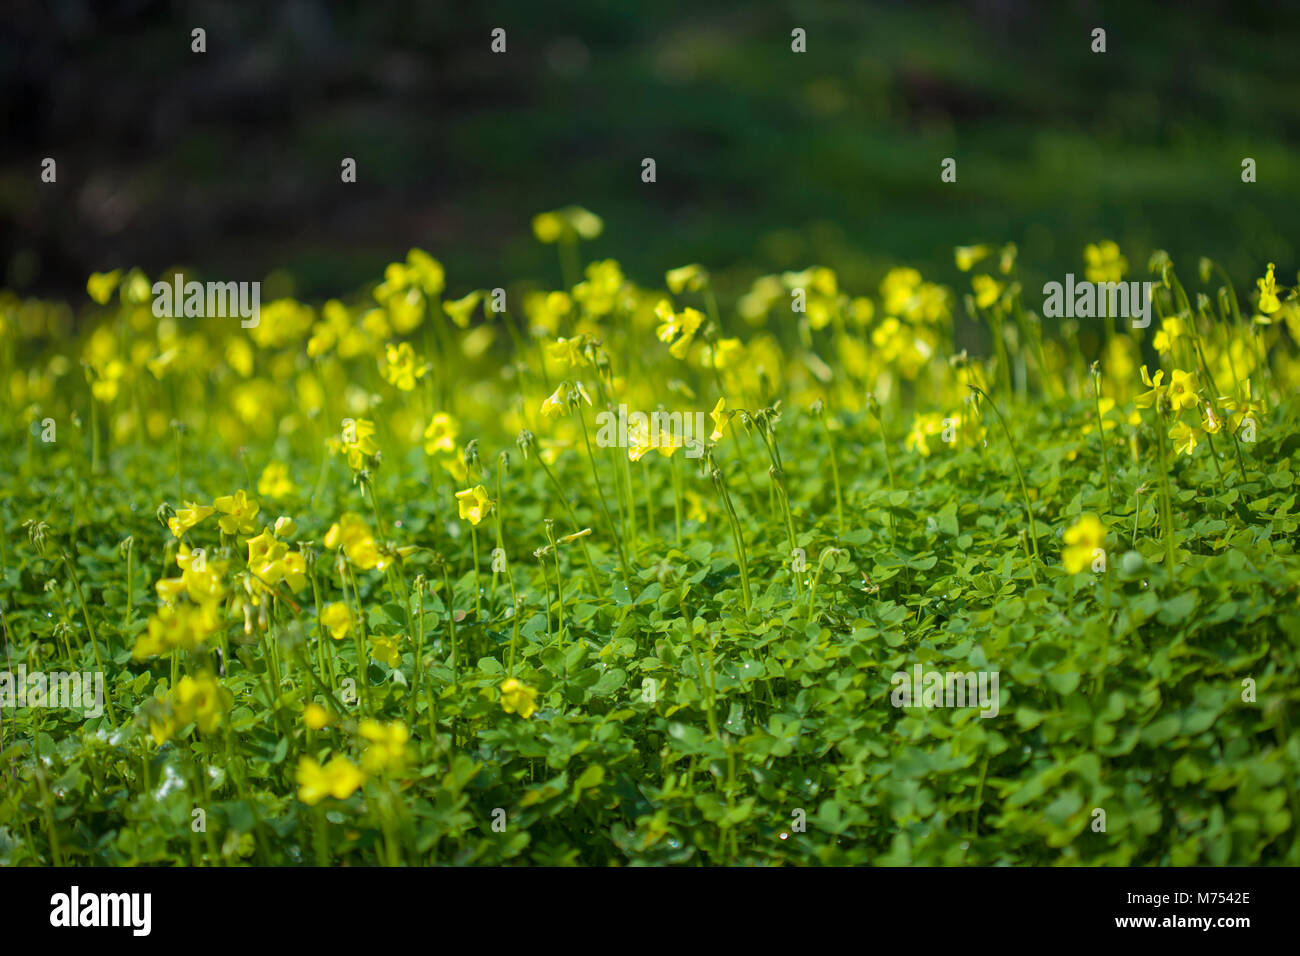 Yellow Flowers Of Oxalis Pes Caprae Bermuda Buttercup Invasive